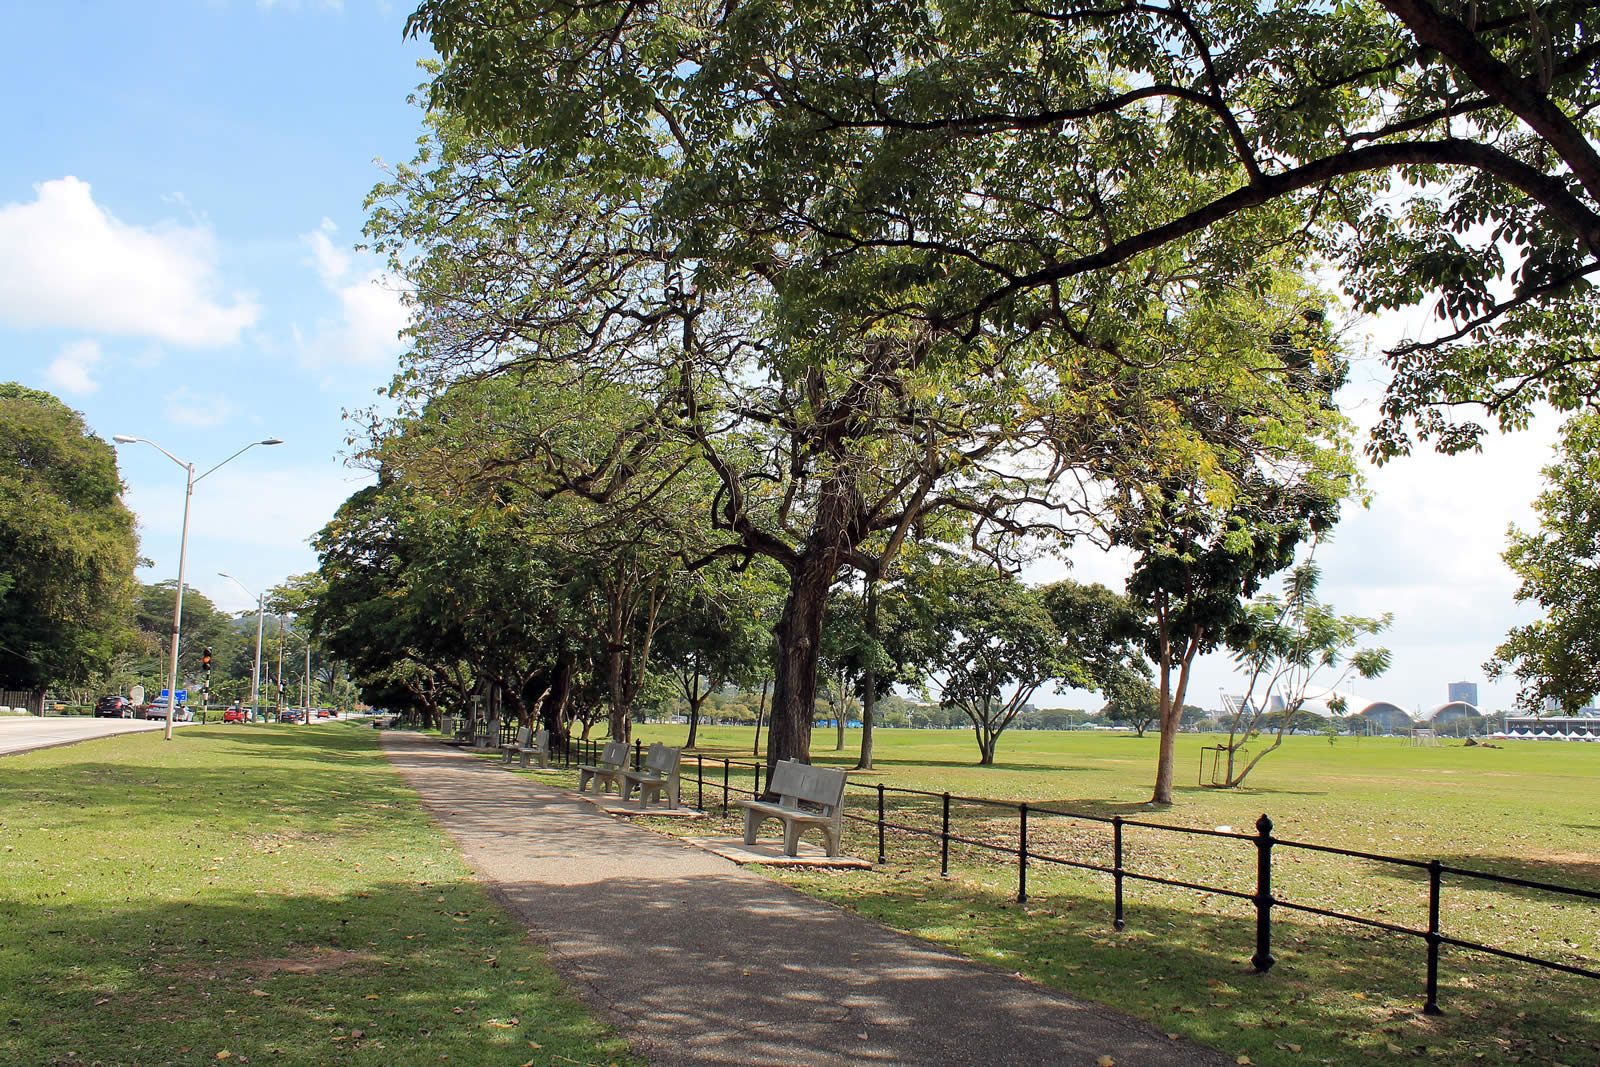 Queen S Park Savannah Destination Trinidad And Tobago Tours Holidays Vacations And Travel Guide